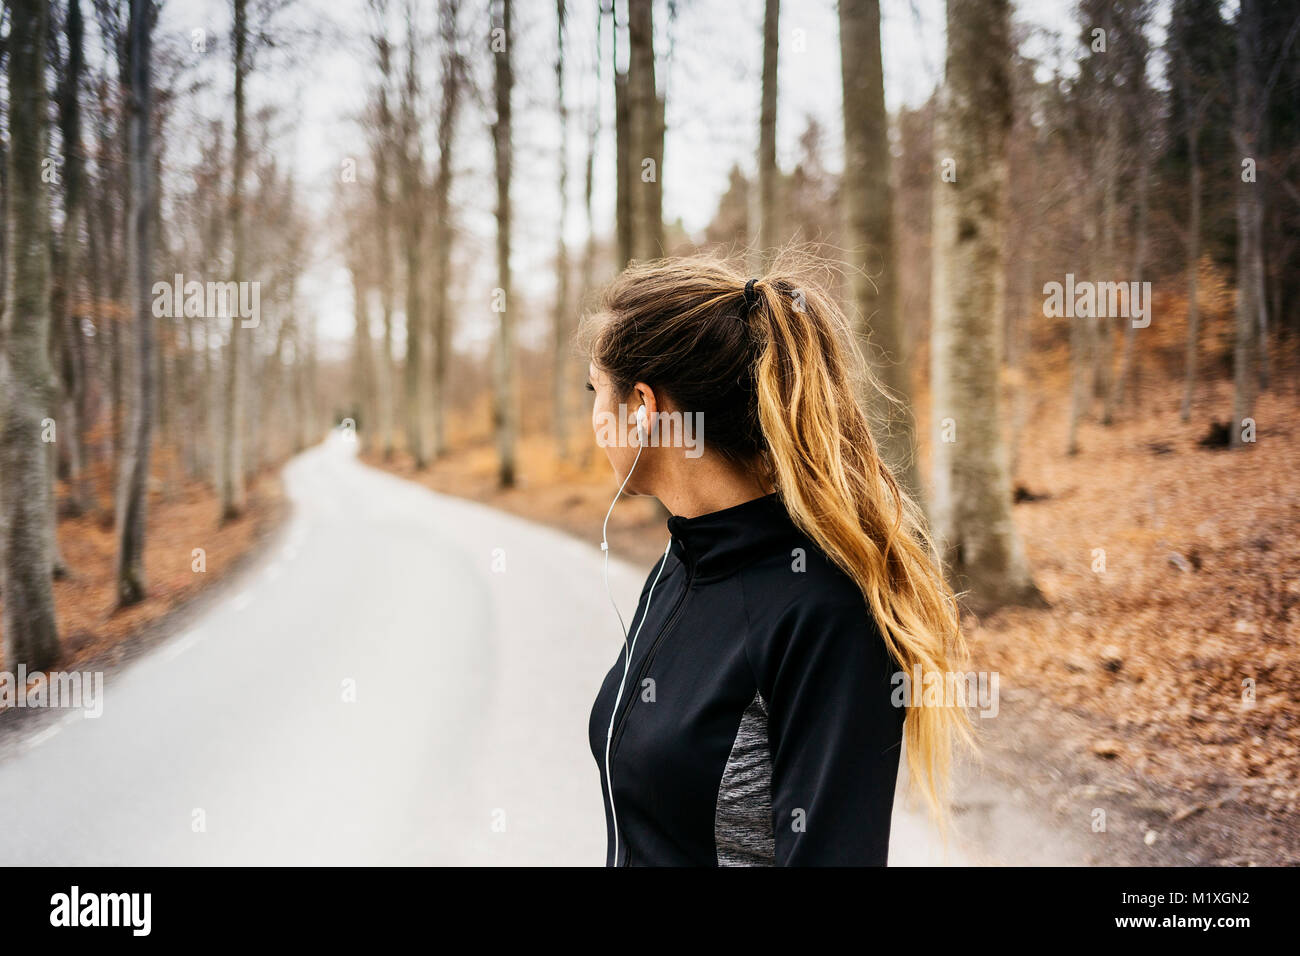 Woman on rural road dans Sodermanland, Suède Photo Stock